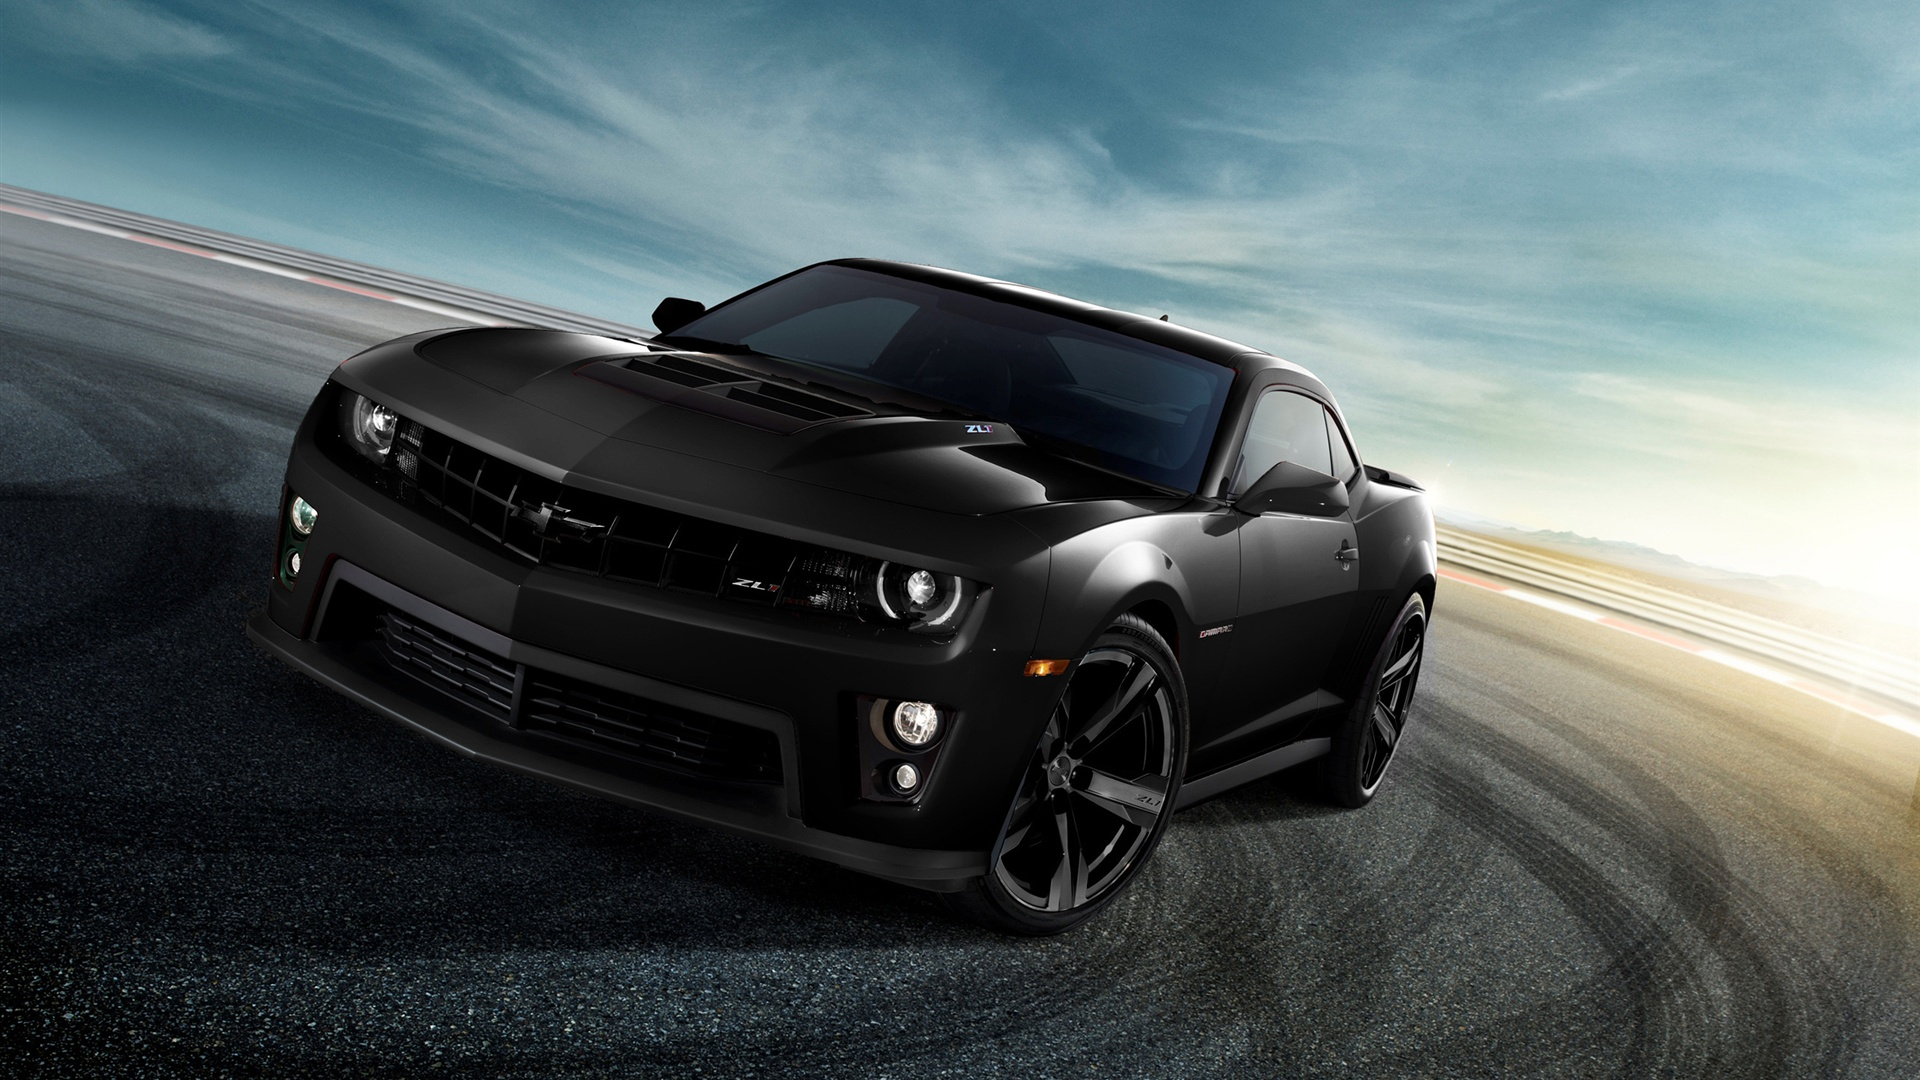 Camaro Zl1 Wallpaper Iphone Fonds D 233 Cran Chevrolet Camaro Zl1 Noir Auto 2560x1600 Hd